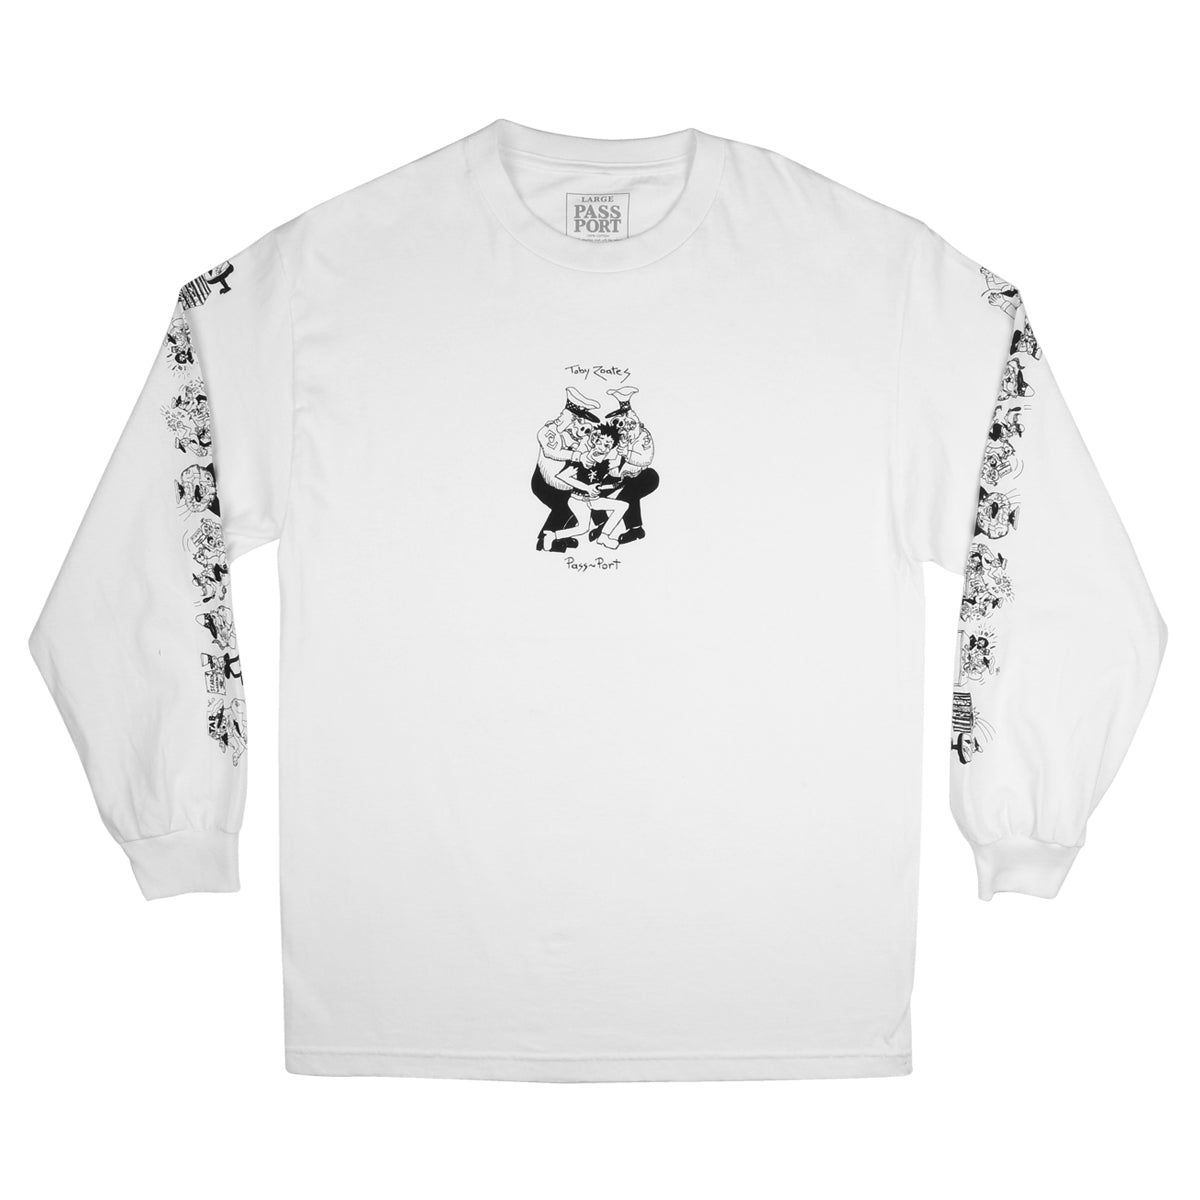 Passport Toby Zoates Coppers Longsleeve Tee Product Photo #1